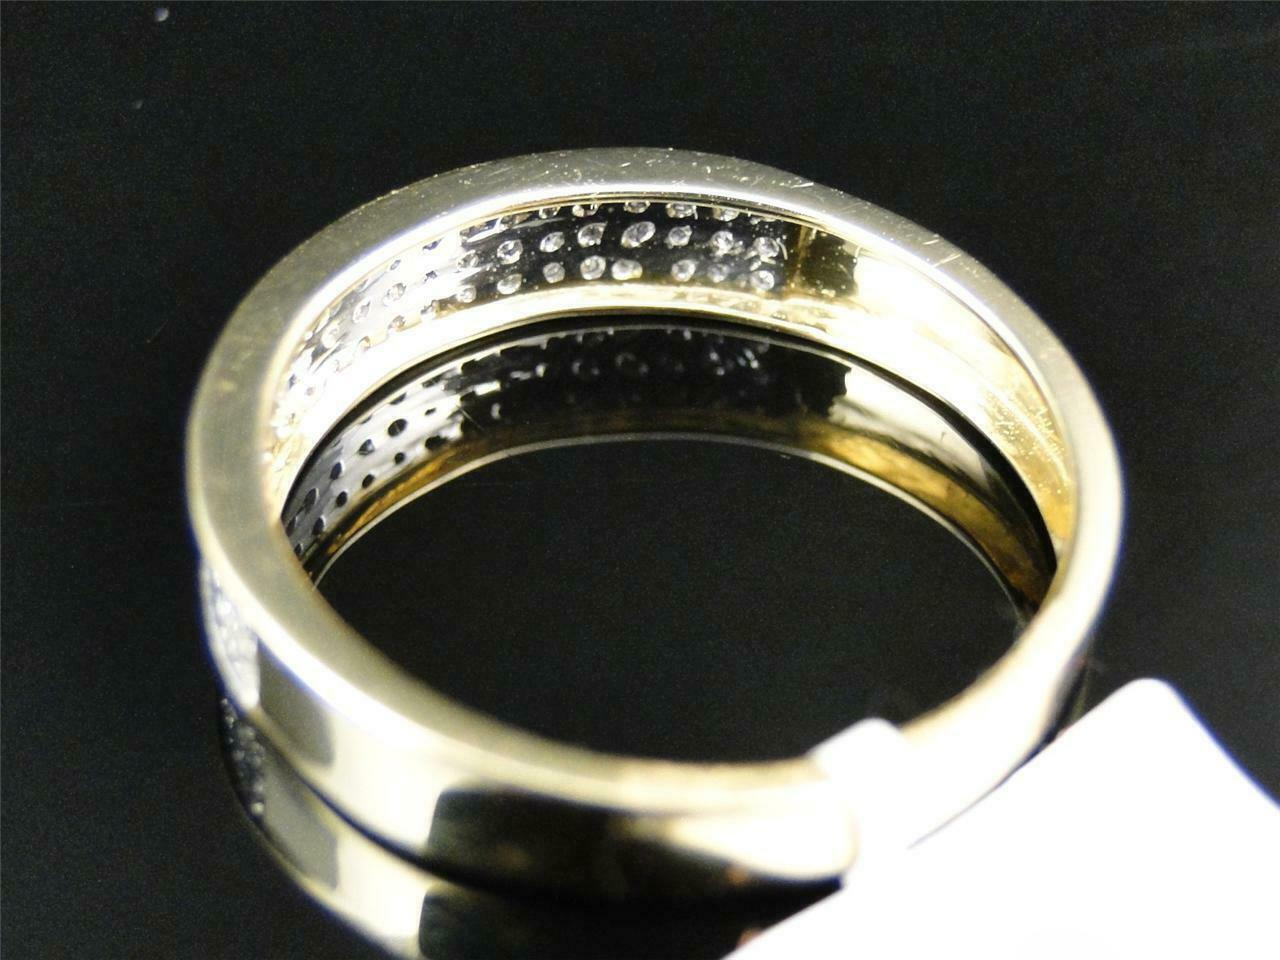 0.50Ct Round Cut Diamond Mens Wedding Engagement Band Ring 14K Yellow Gold Over 2